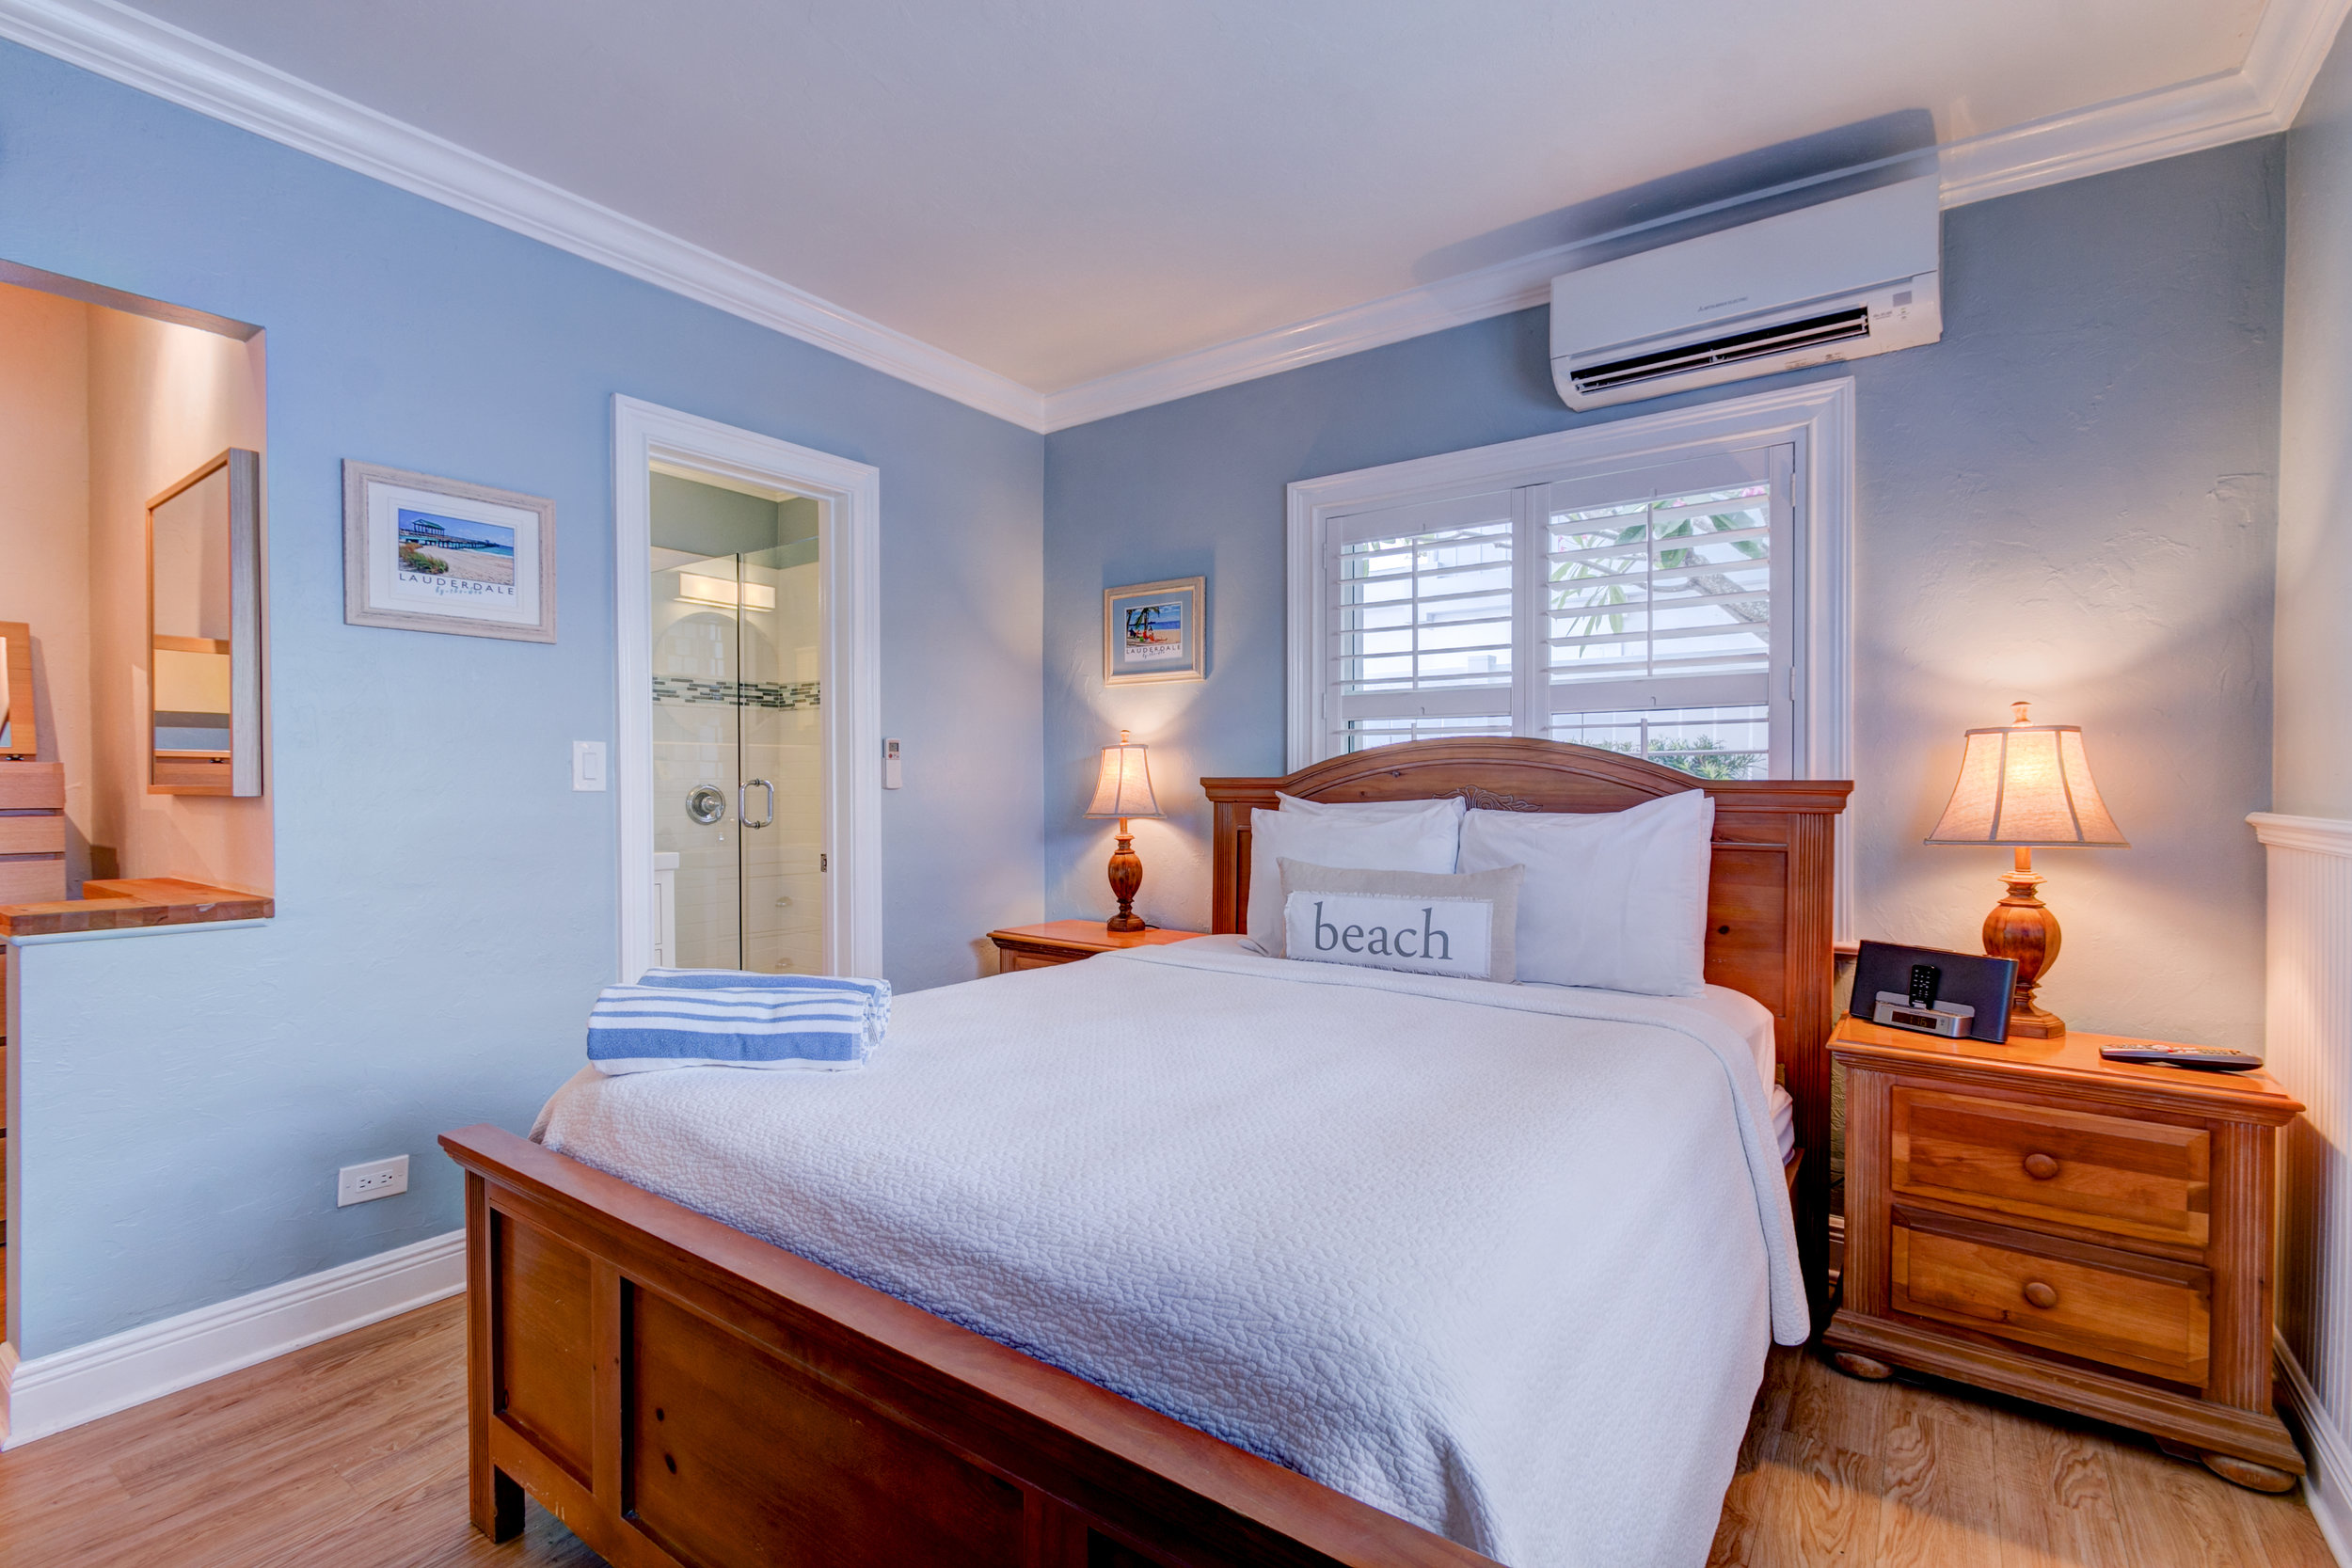 Beachhouse Suite Bedroom View 4.jpg